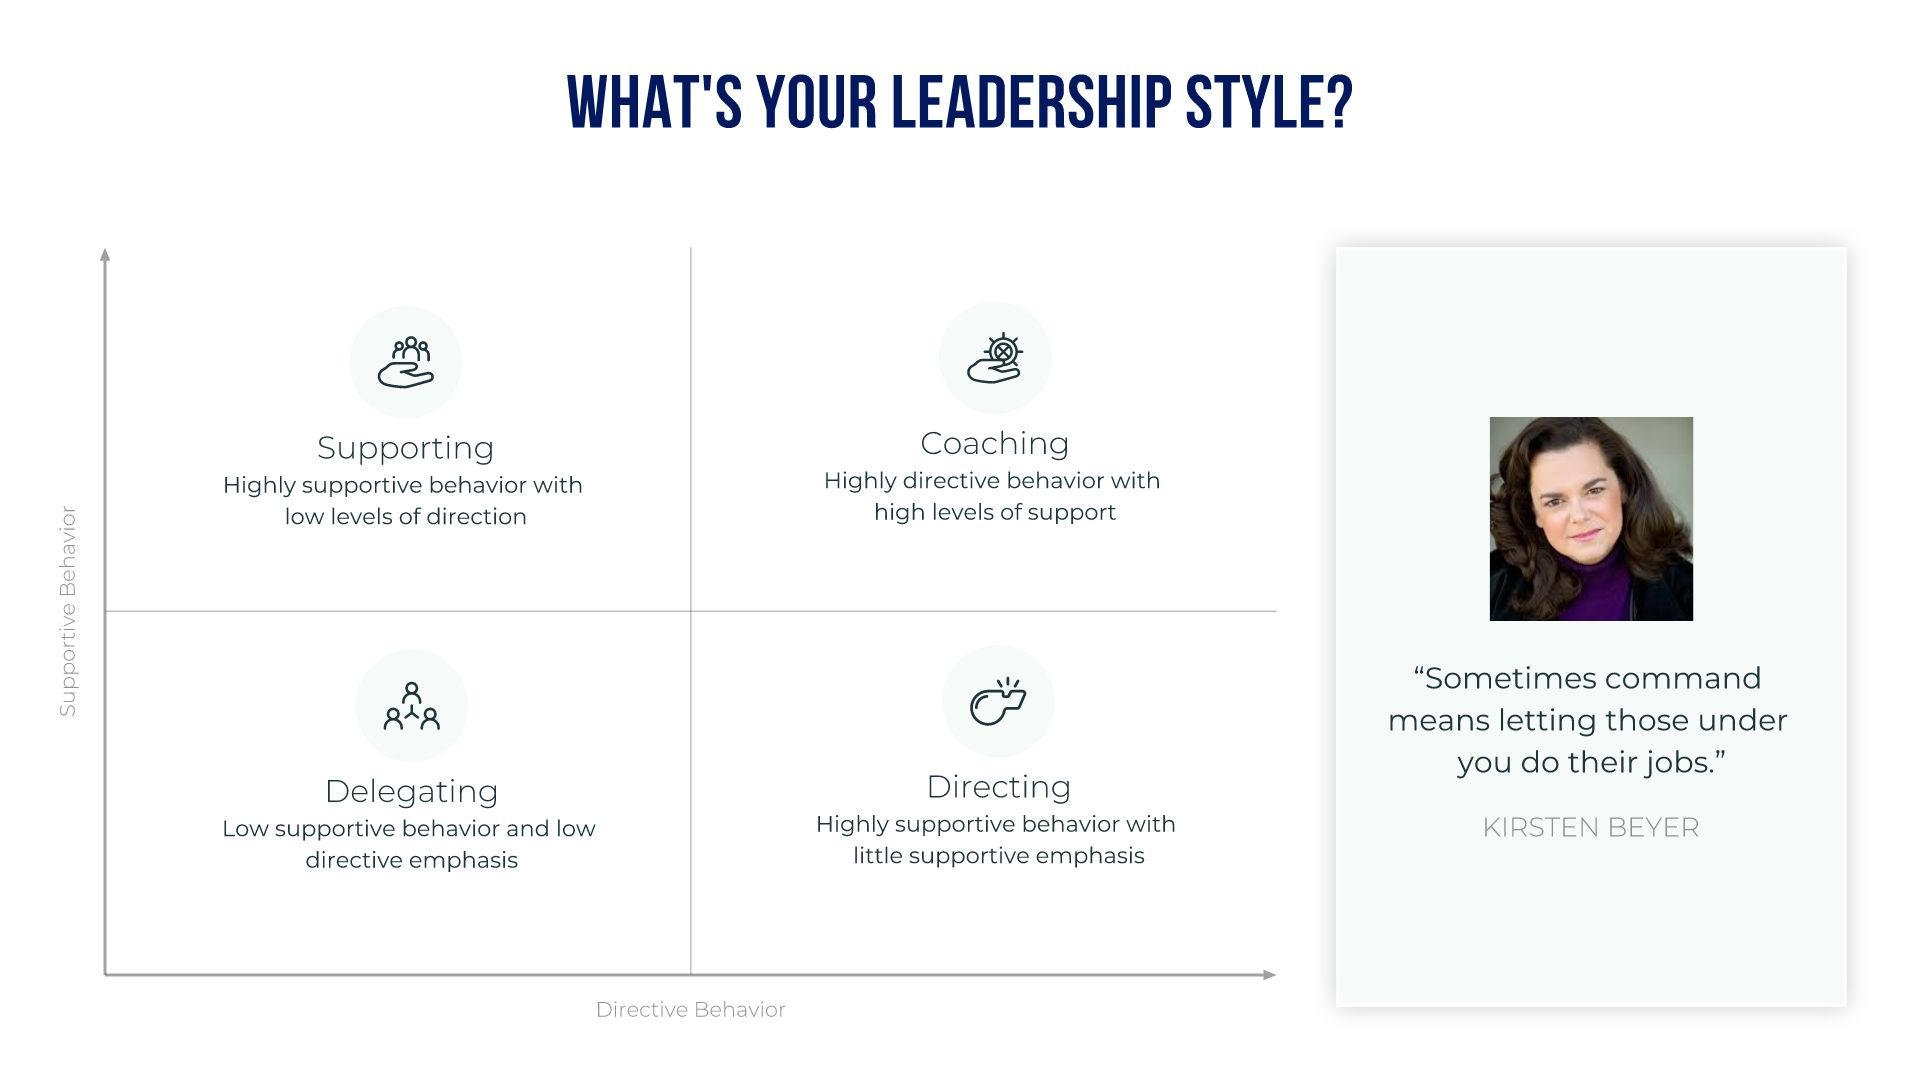 XY graph example showing types of leadership styles